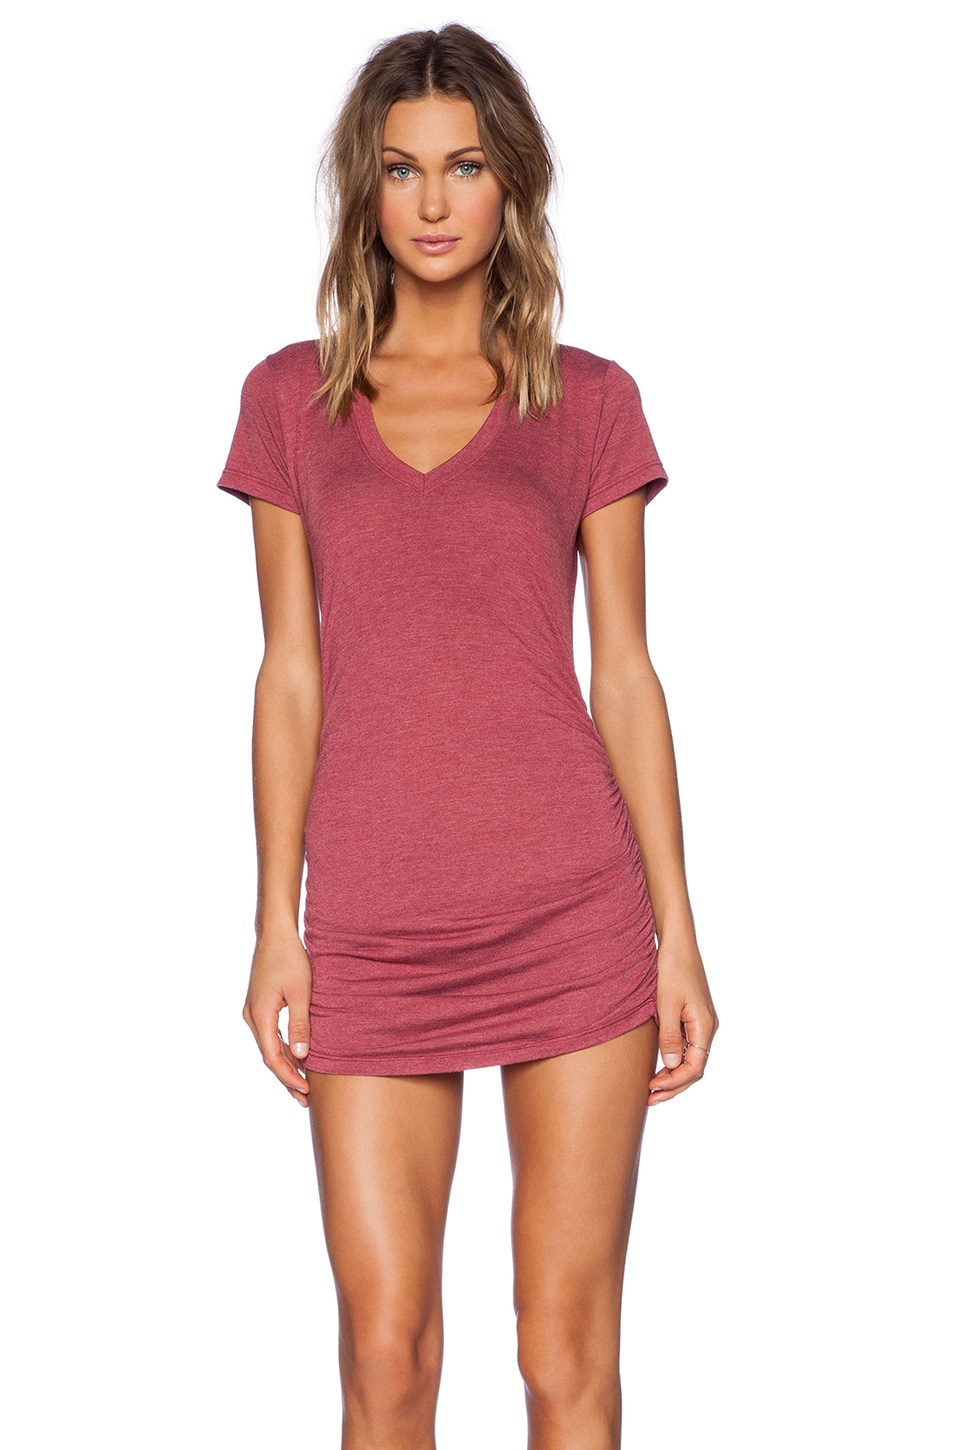 Saint Grace V Neck with Shirring Dress in Cran